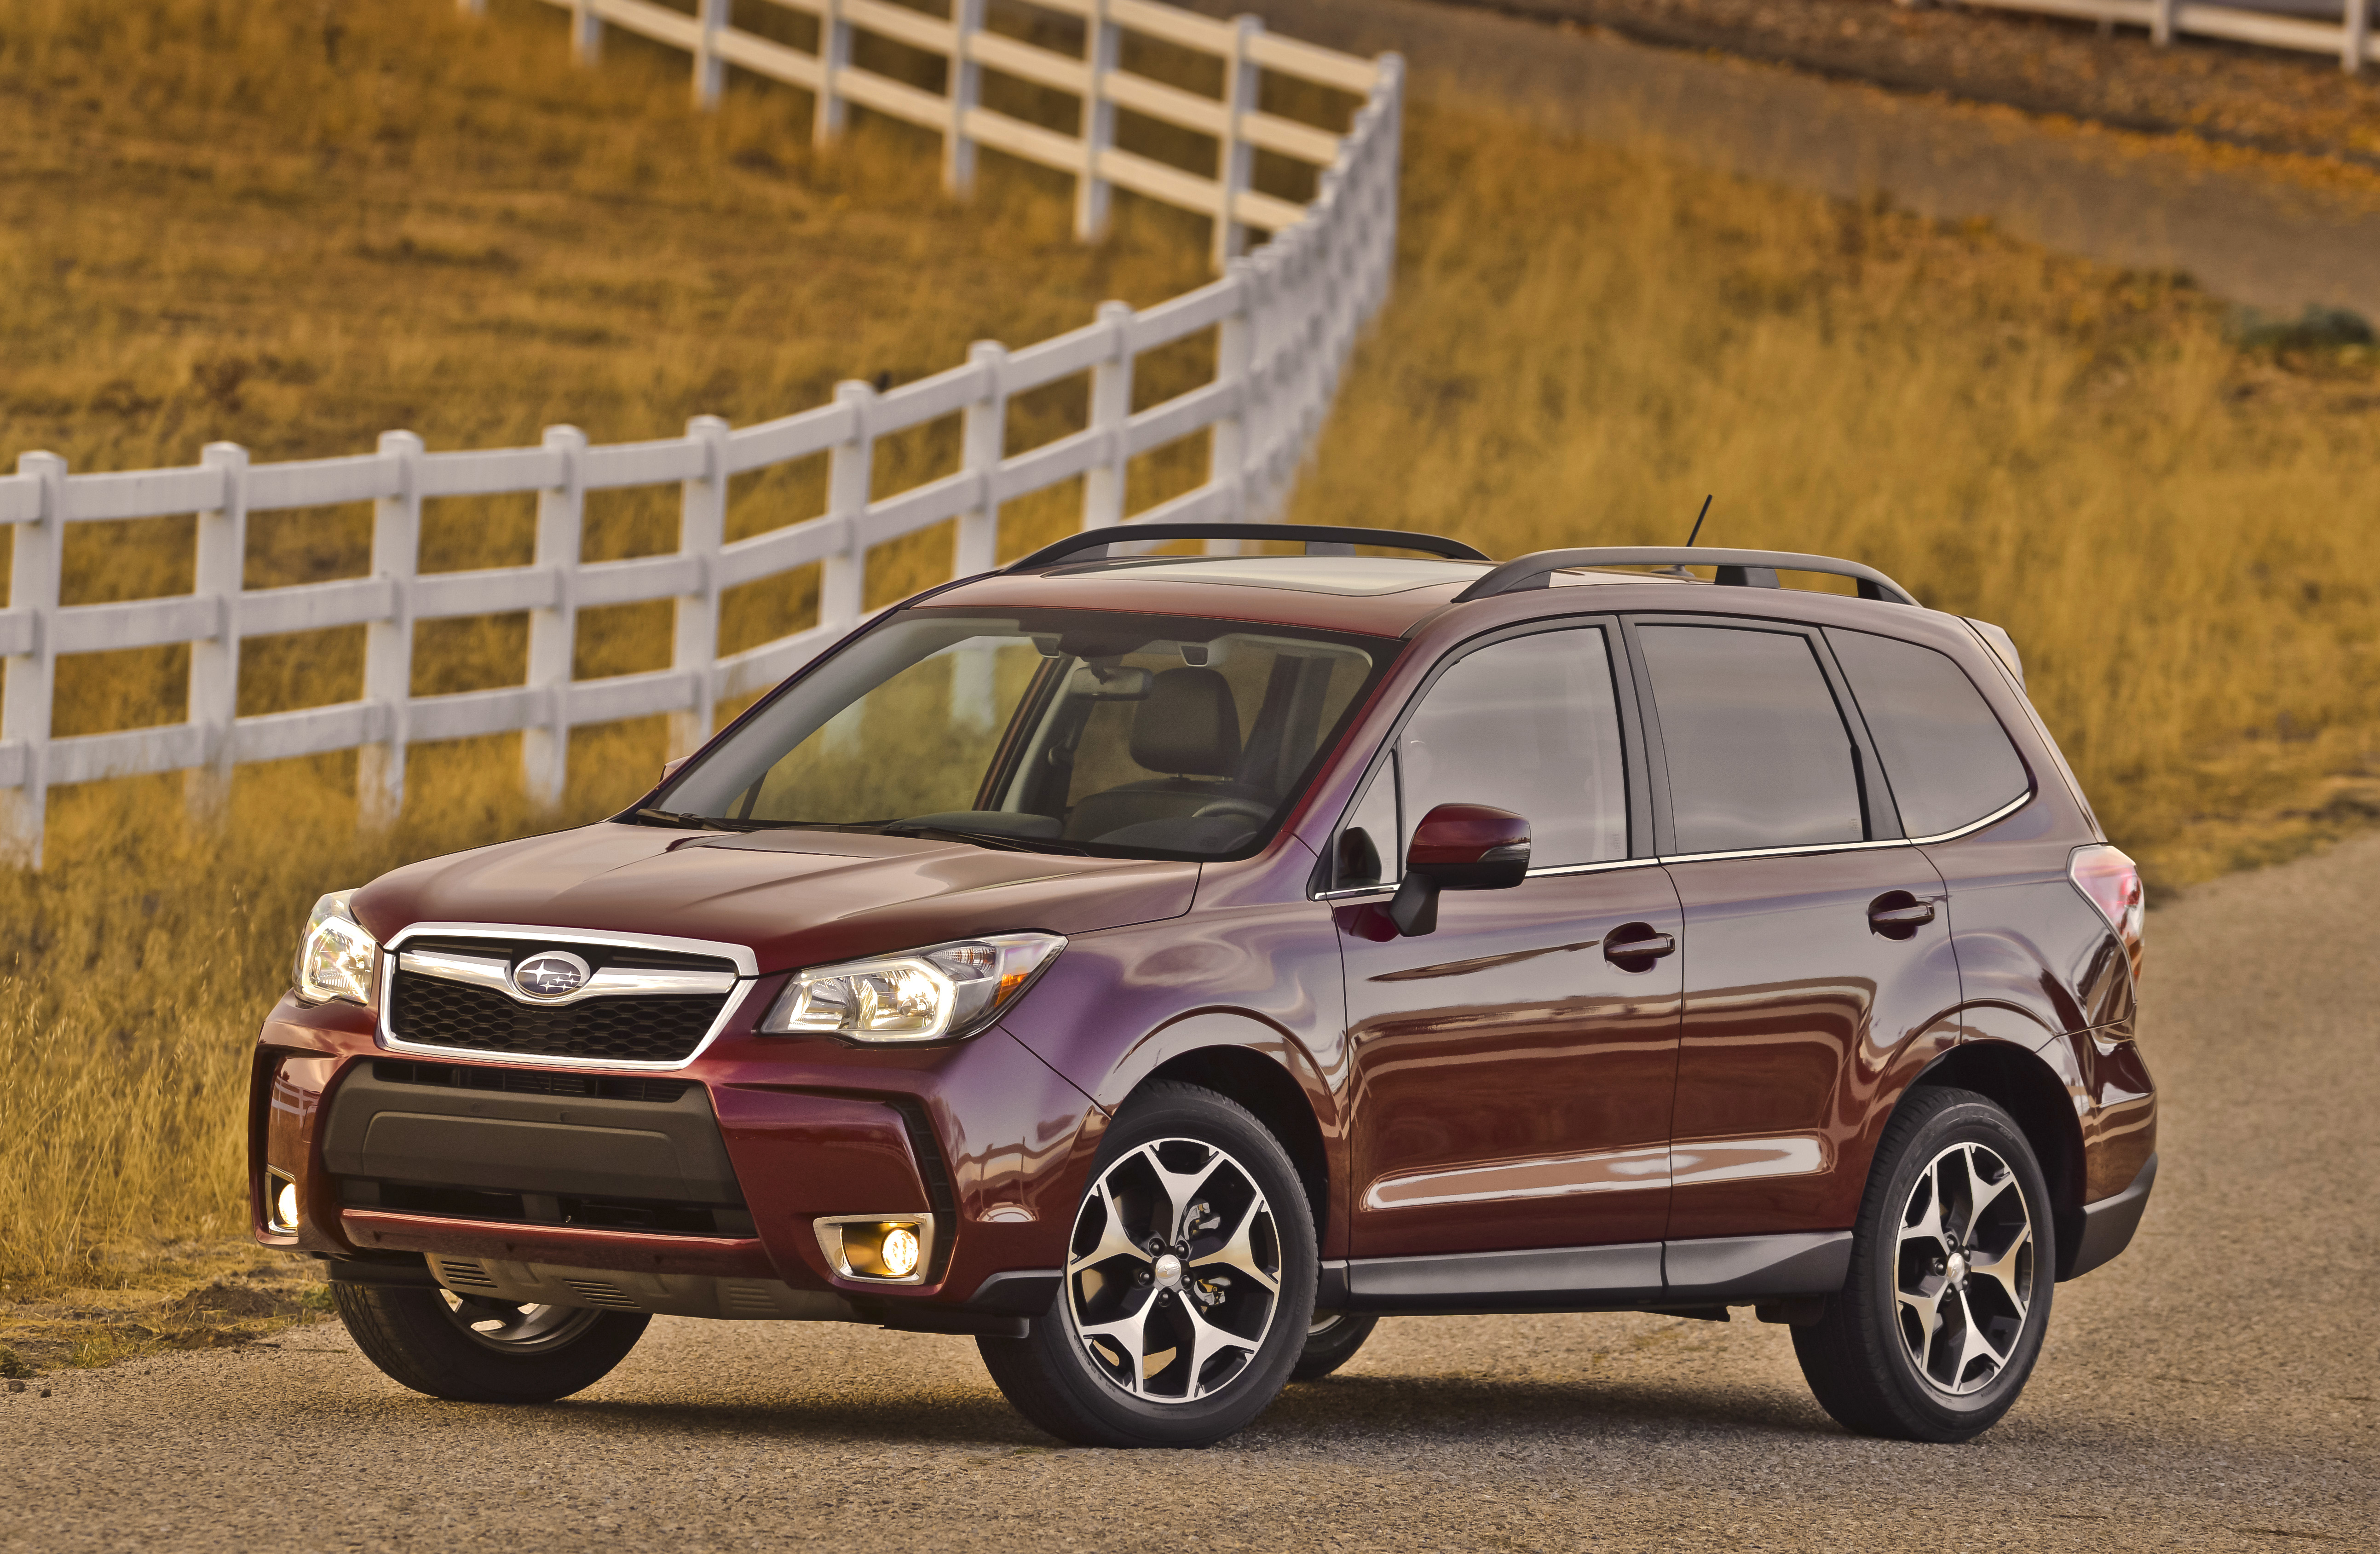 2014 subaru forester review carfax vehicle research. Black Bedroom Furniture Sets. Home Design Ideas